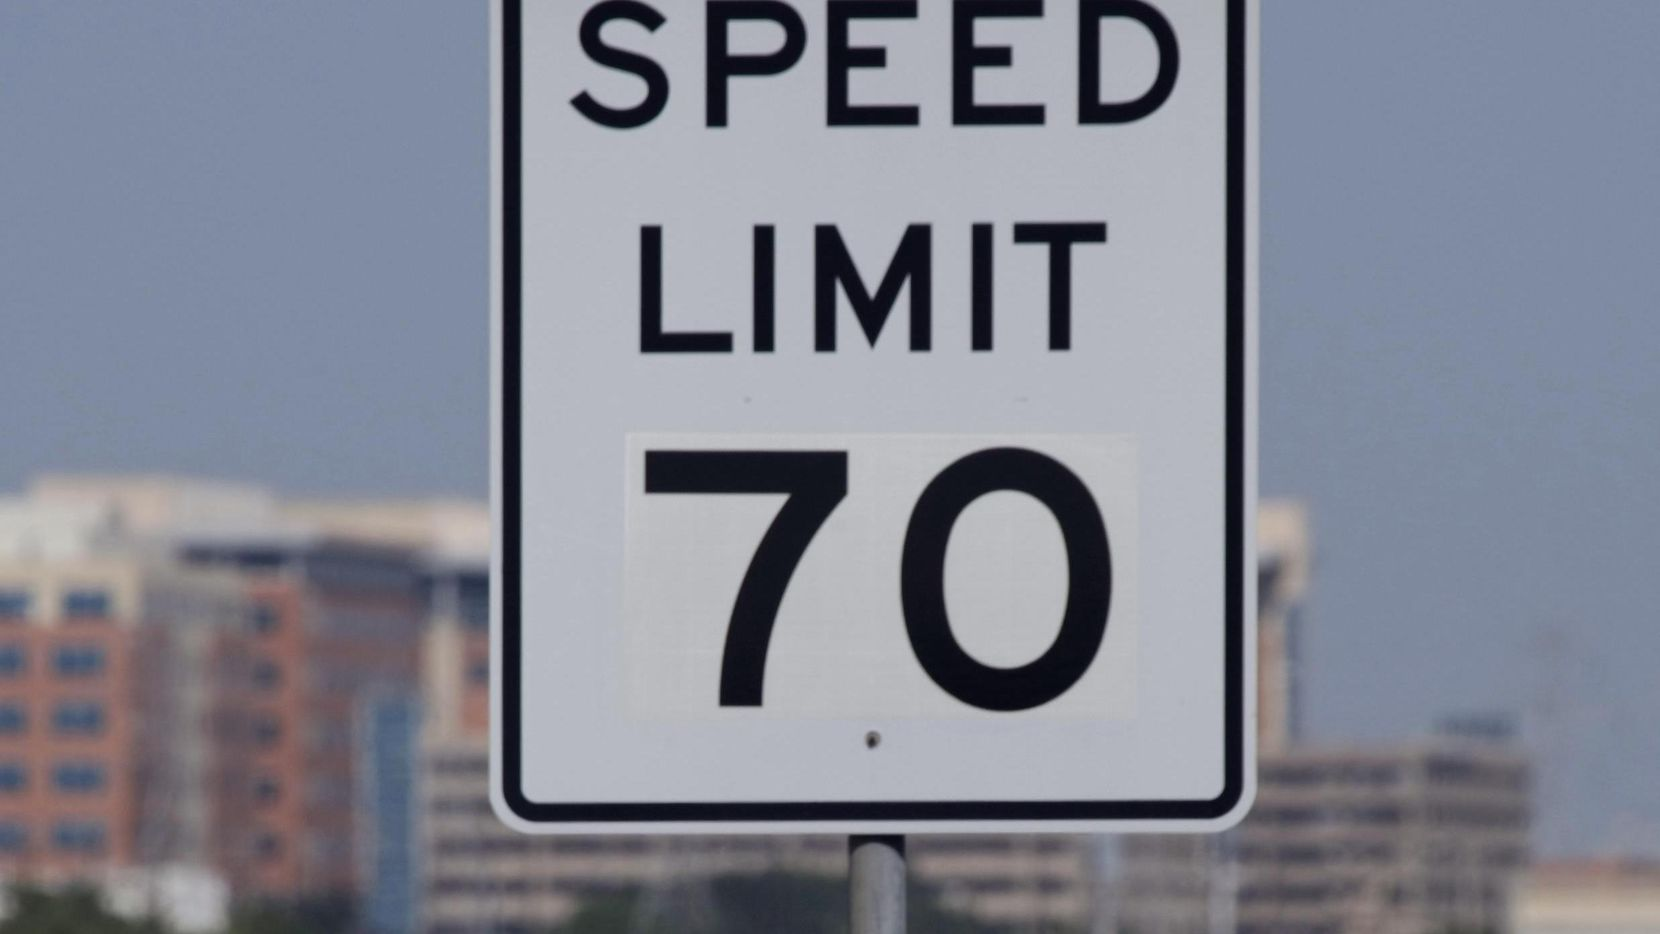 Eastbound drivers on the President George Bush Turnpike, just east of the Dallas North Tollway, pass 70 mph speed limit signs put up by North Texas Tollway Authority on August 24, 2009, in Dallas, Texas.